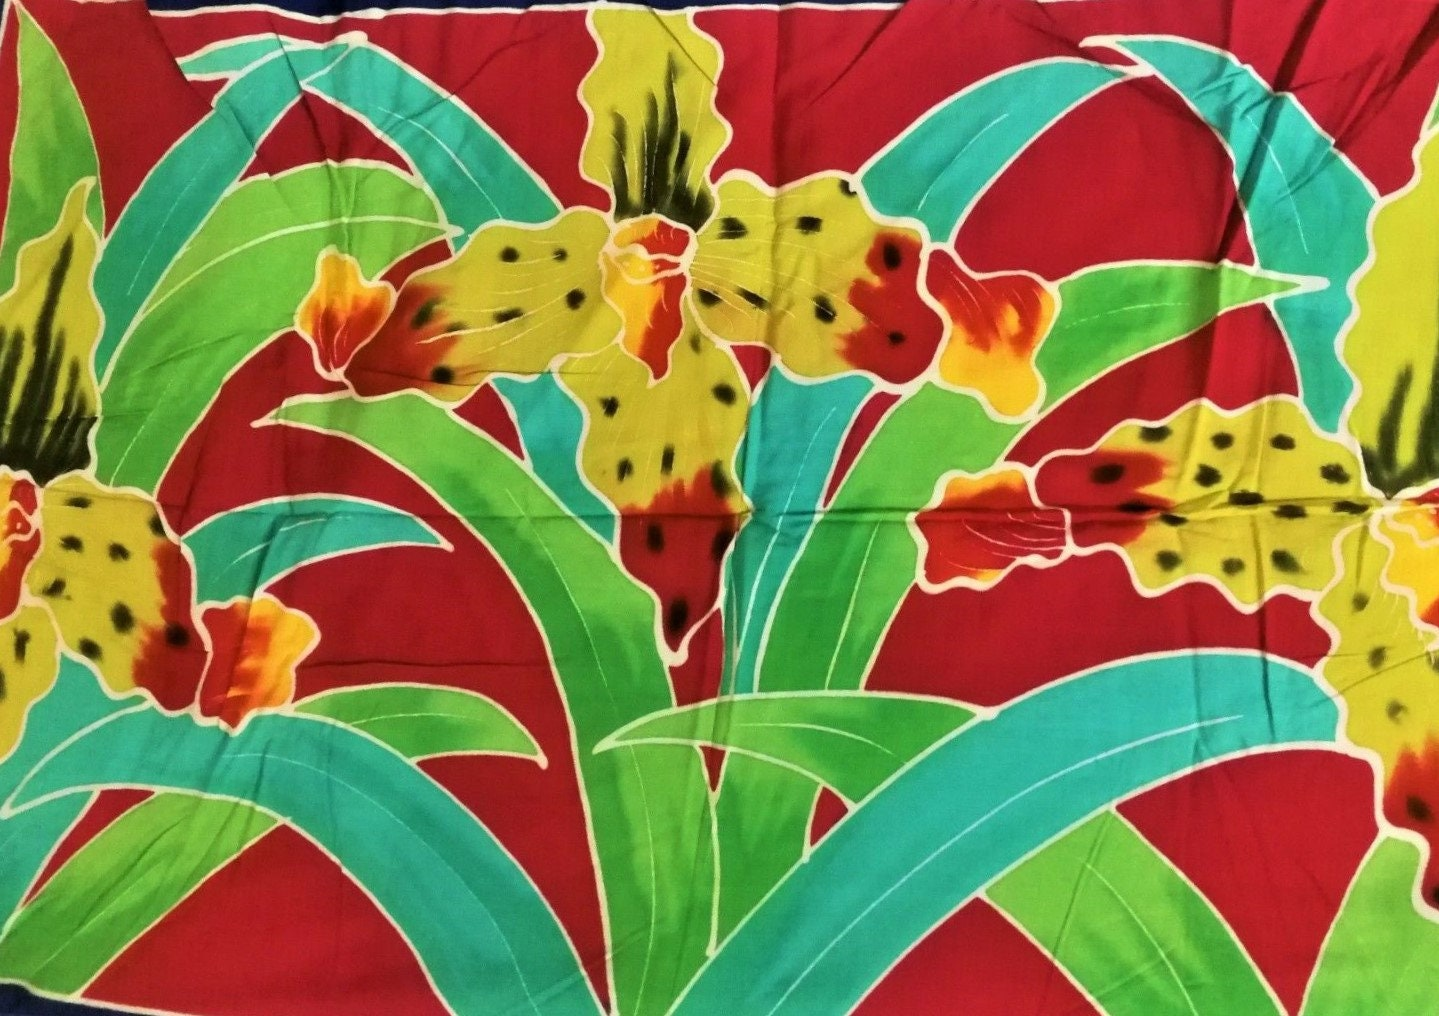 Vintage Scarf Styles -1920s to 1960s Vintage 100 Percent Rayon Half Sarong, Hand Painted in Indonesia, Mothers Day Gift, Wall Hanging, Summer Cover Up, Wrap, Scarf, Pics $0.00 AT vintagedancer.com